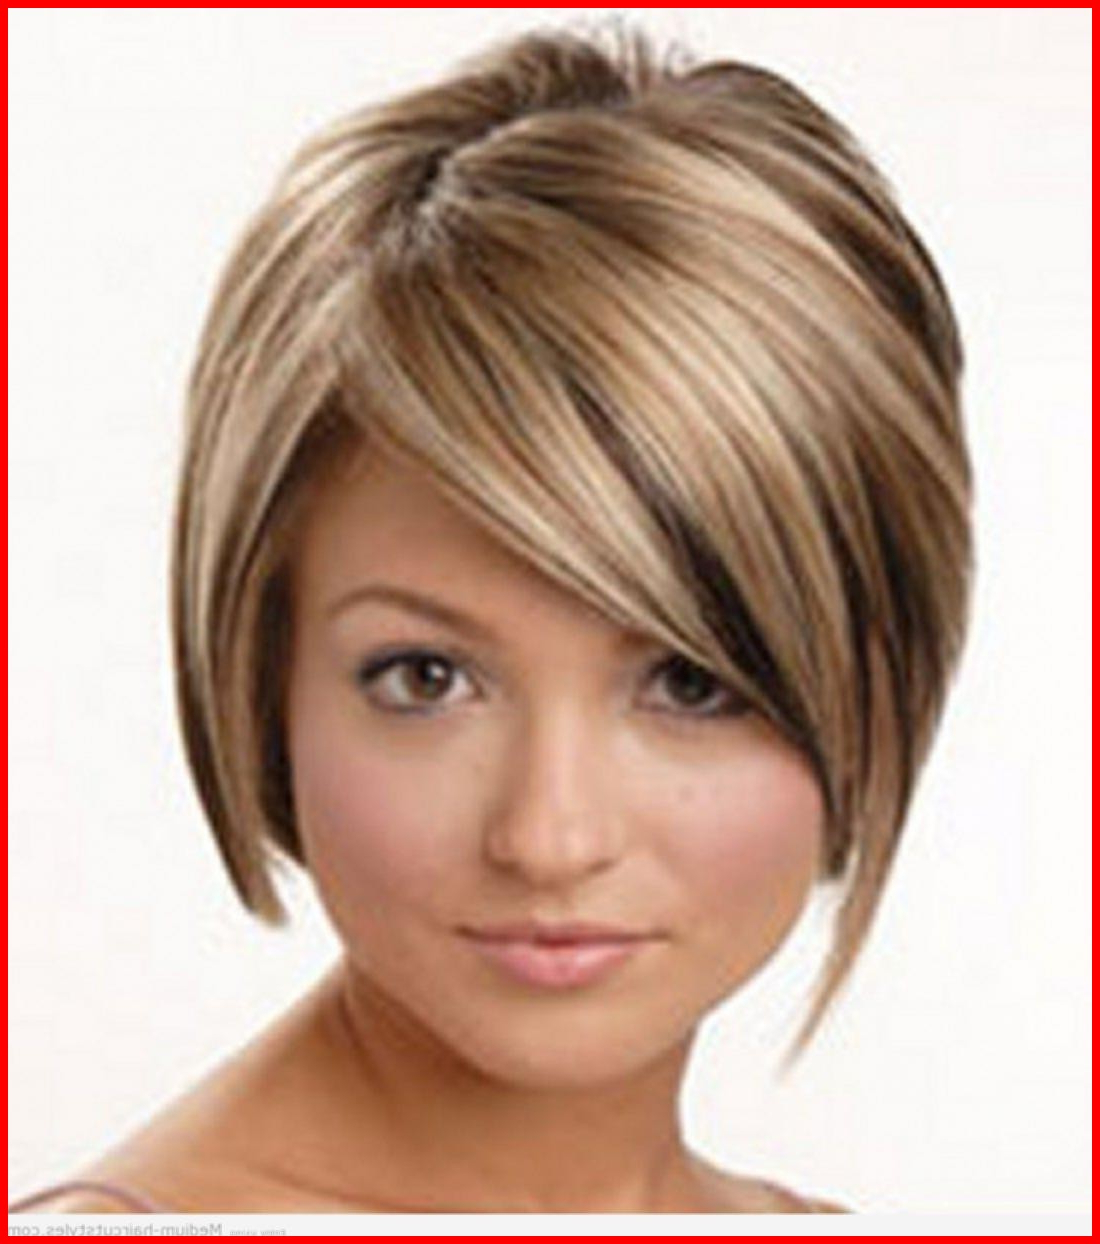 Girls Short Haircuts 22381 Haircuts For Girls With Medium Hair Short with Teenage Girl Short Haircuts